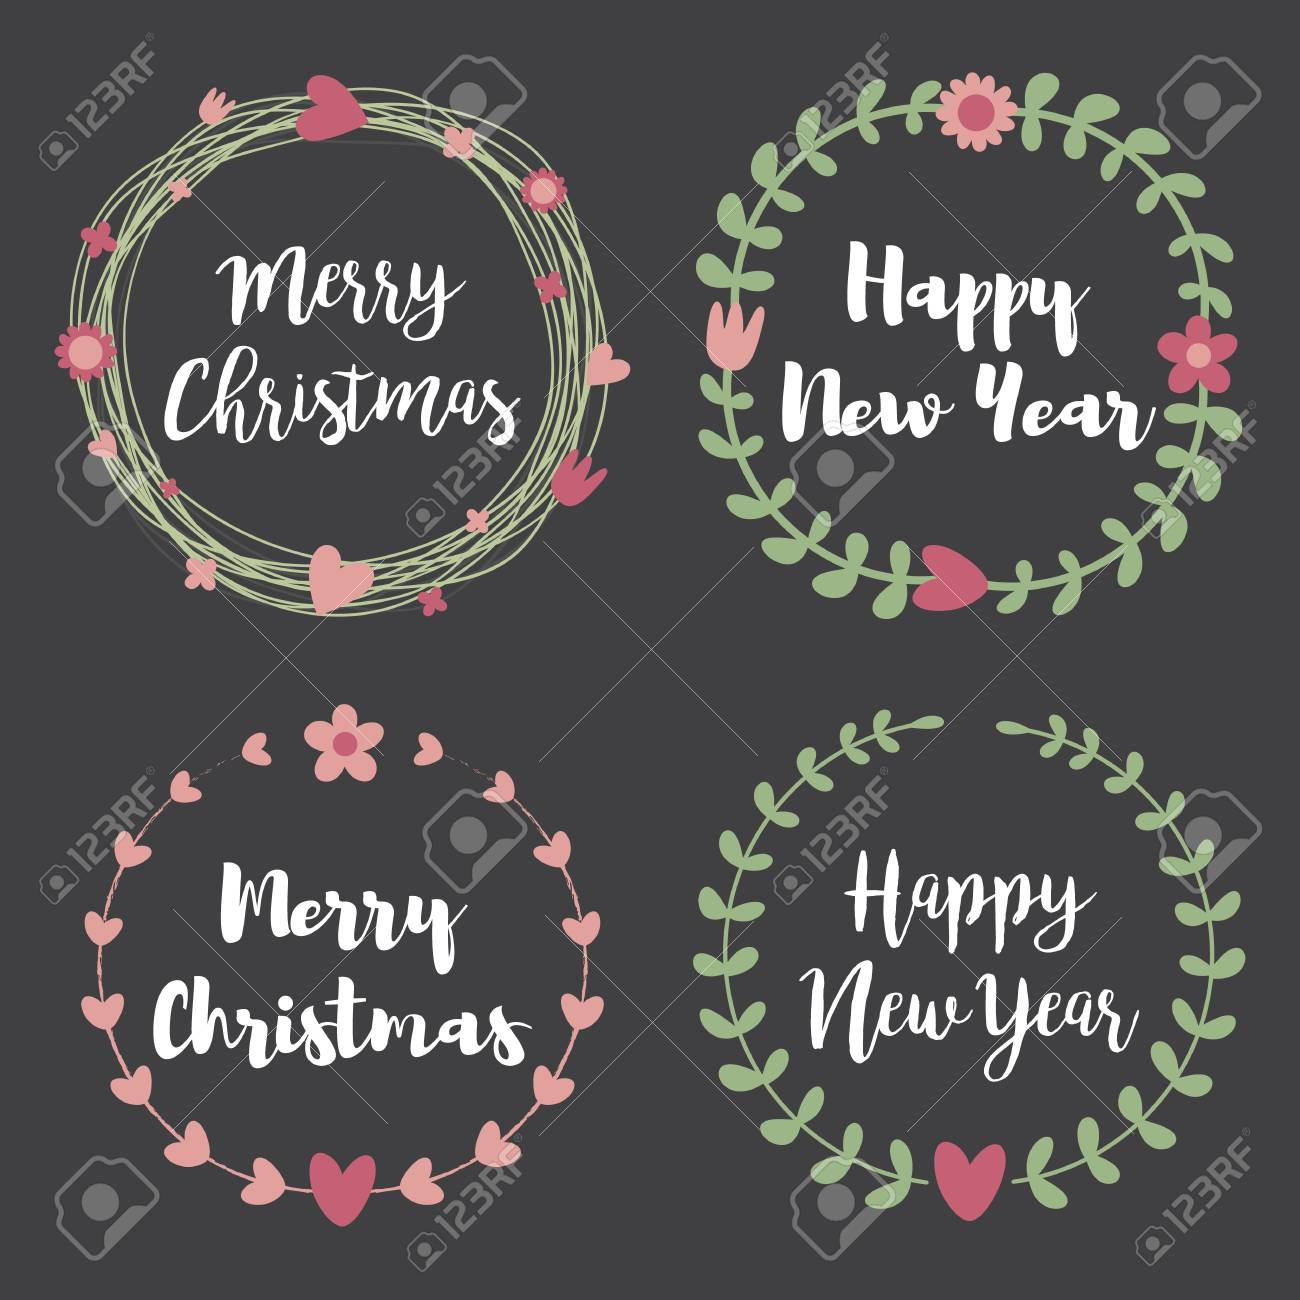 Merry Christmas Labels.Christmas Labels And Badges Set Of Floral Wreath Frame For Merry